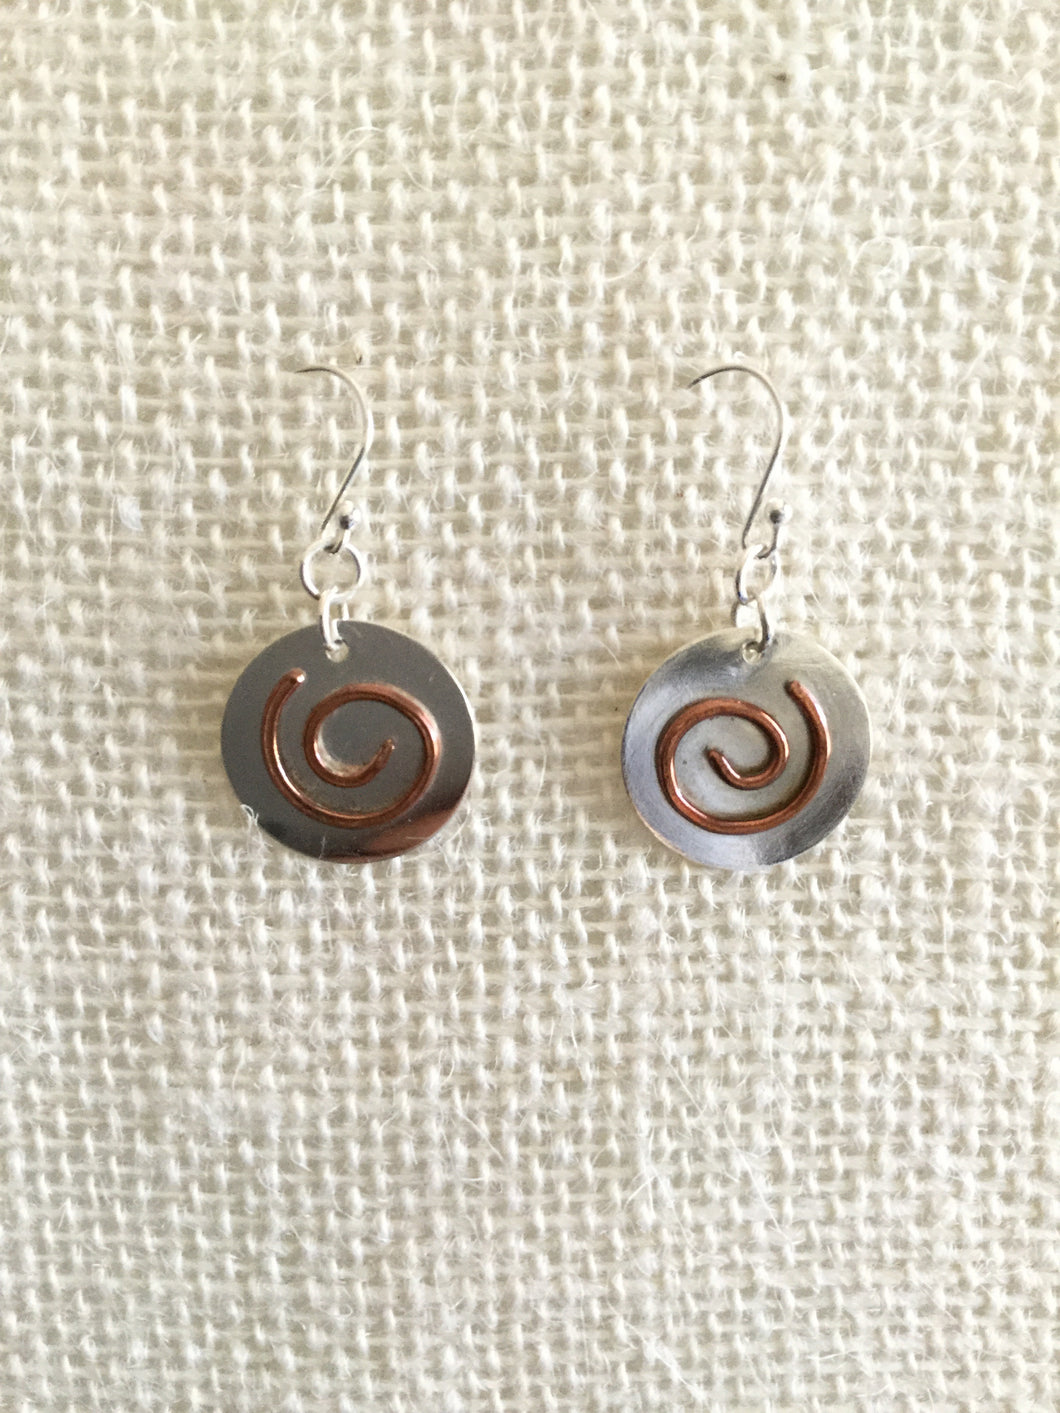 Disc/Swirl earrings